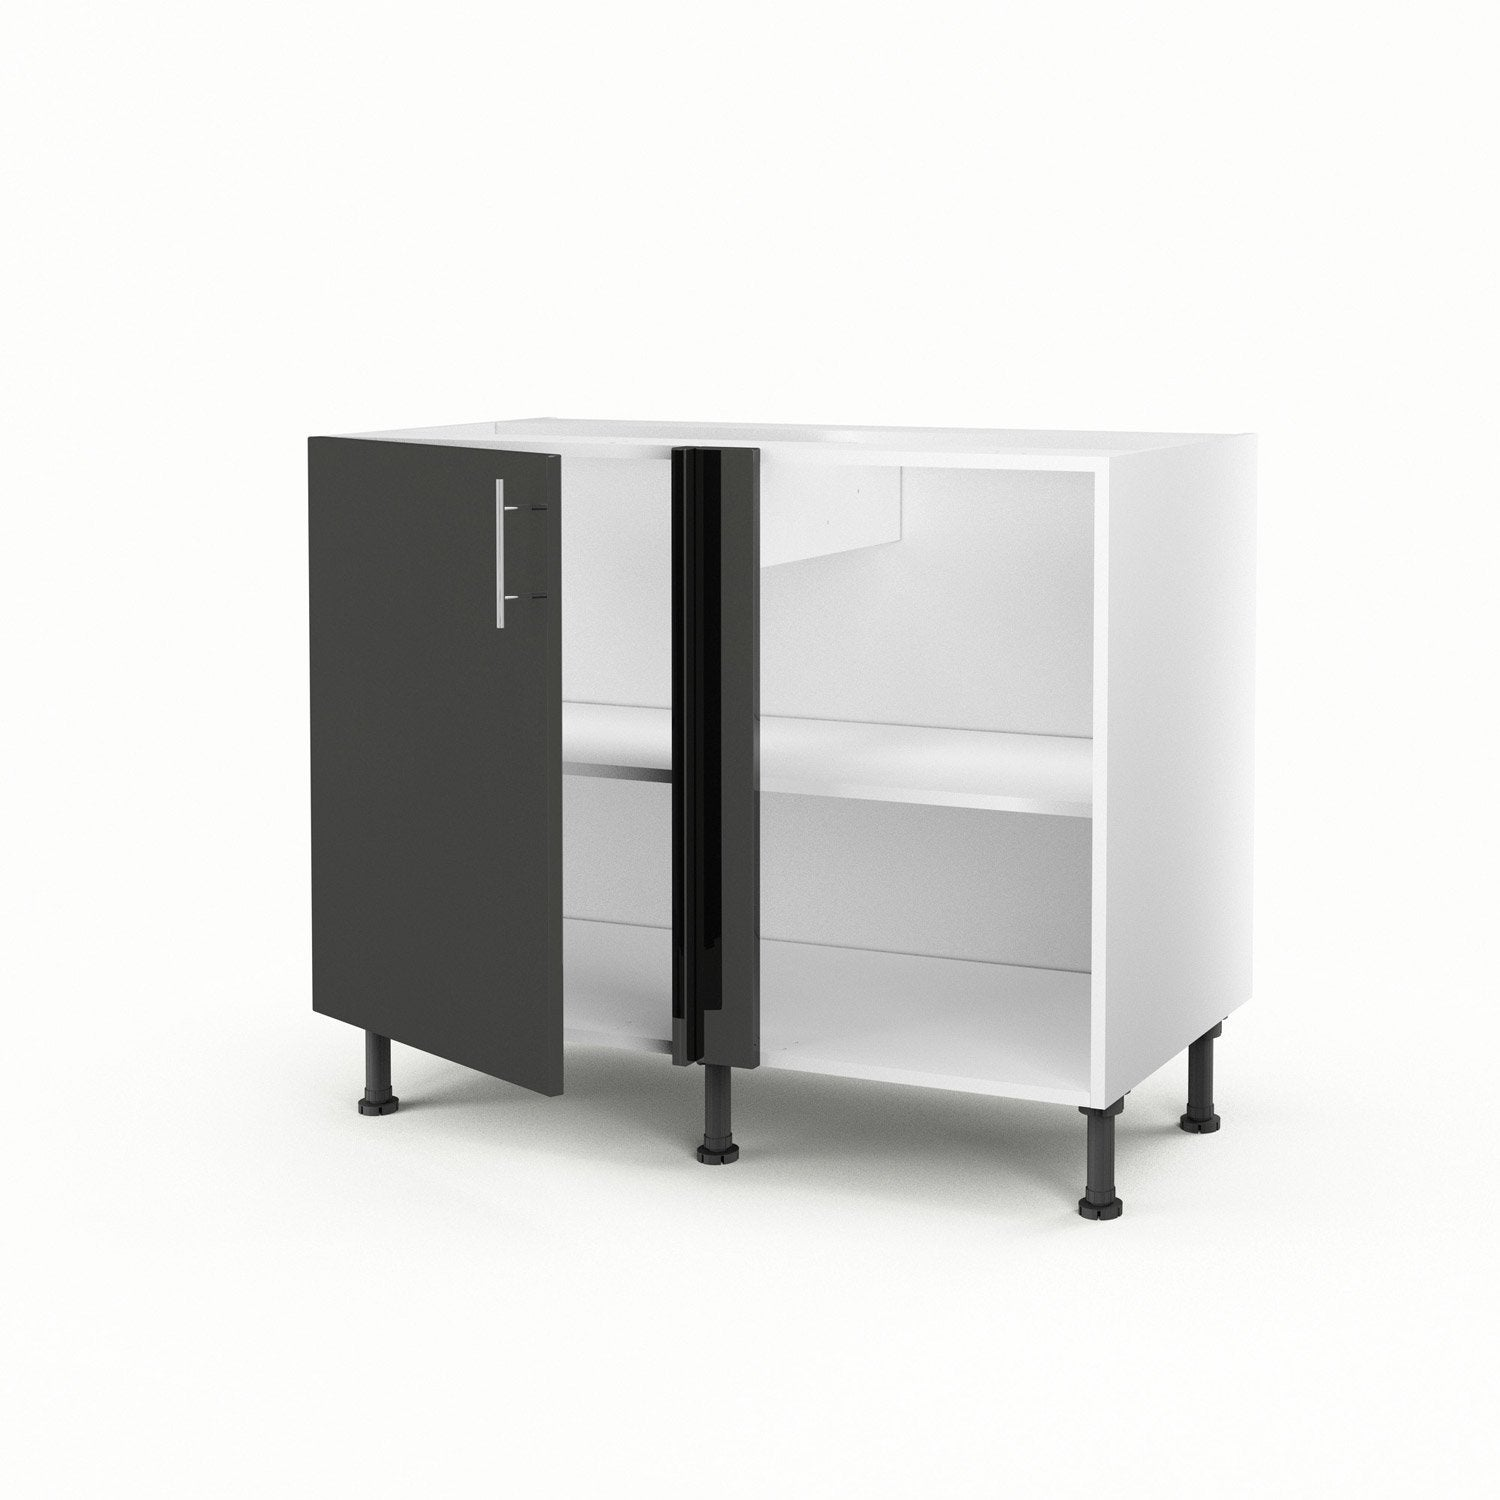 meuble de cuisine bas d 39 angle gris 1 porte rio x l. Black Bedroom Furniture Sets. Home Design Ideas